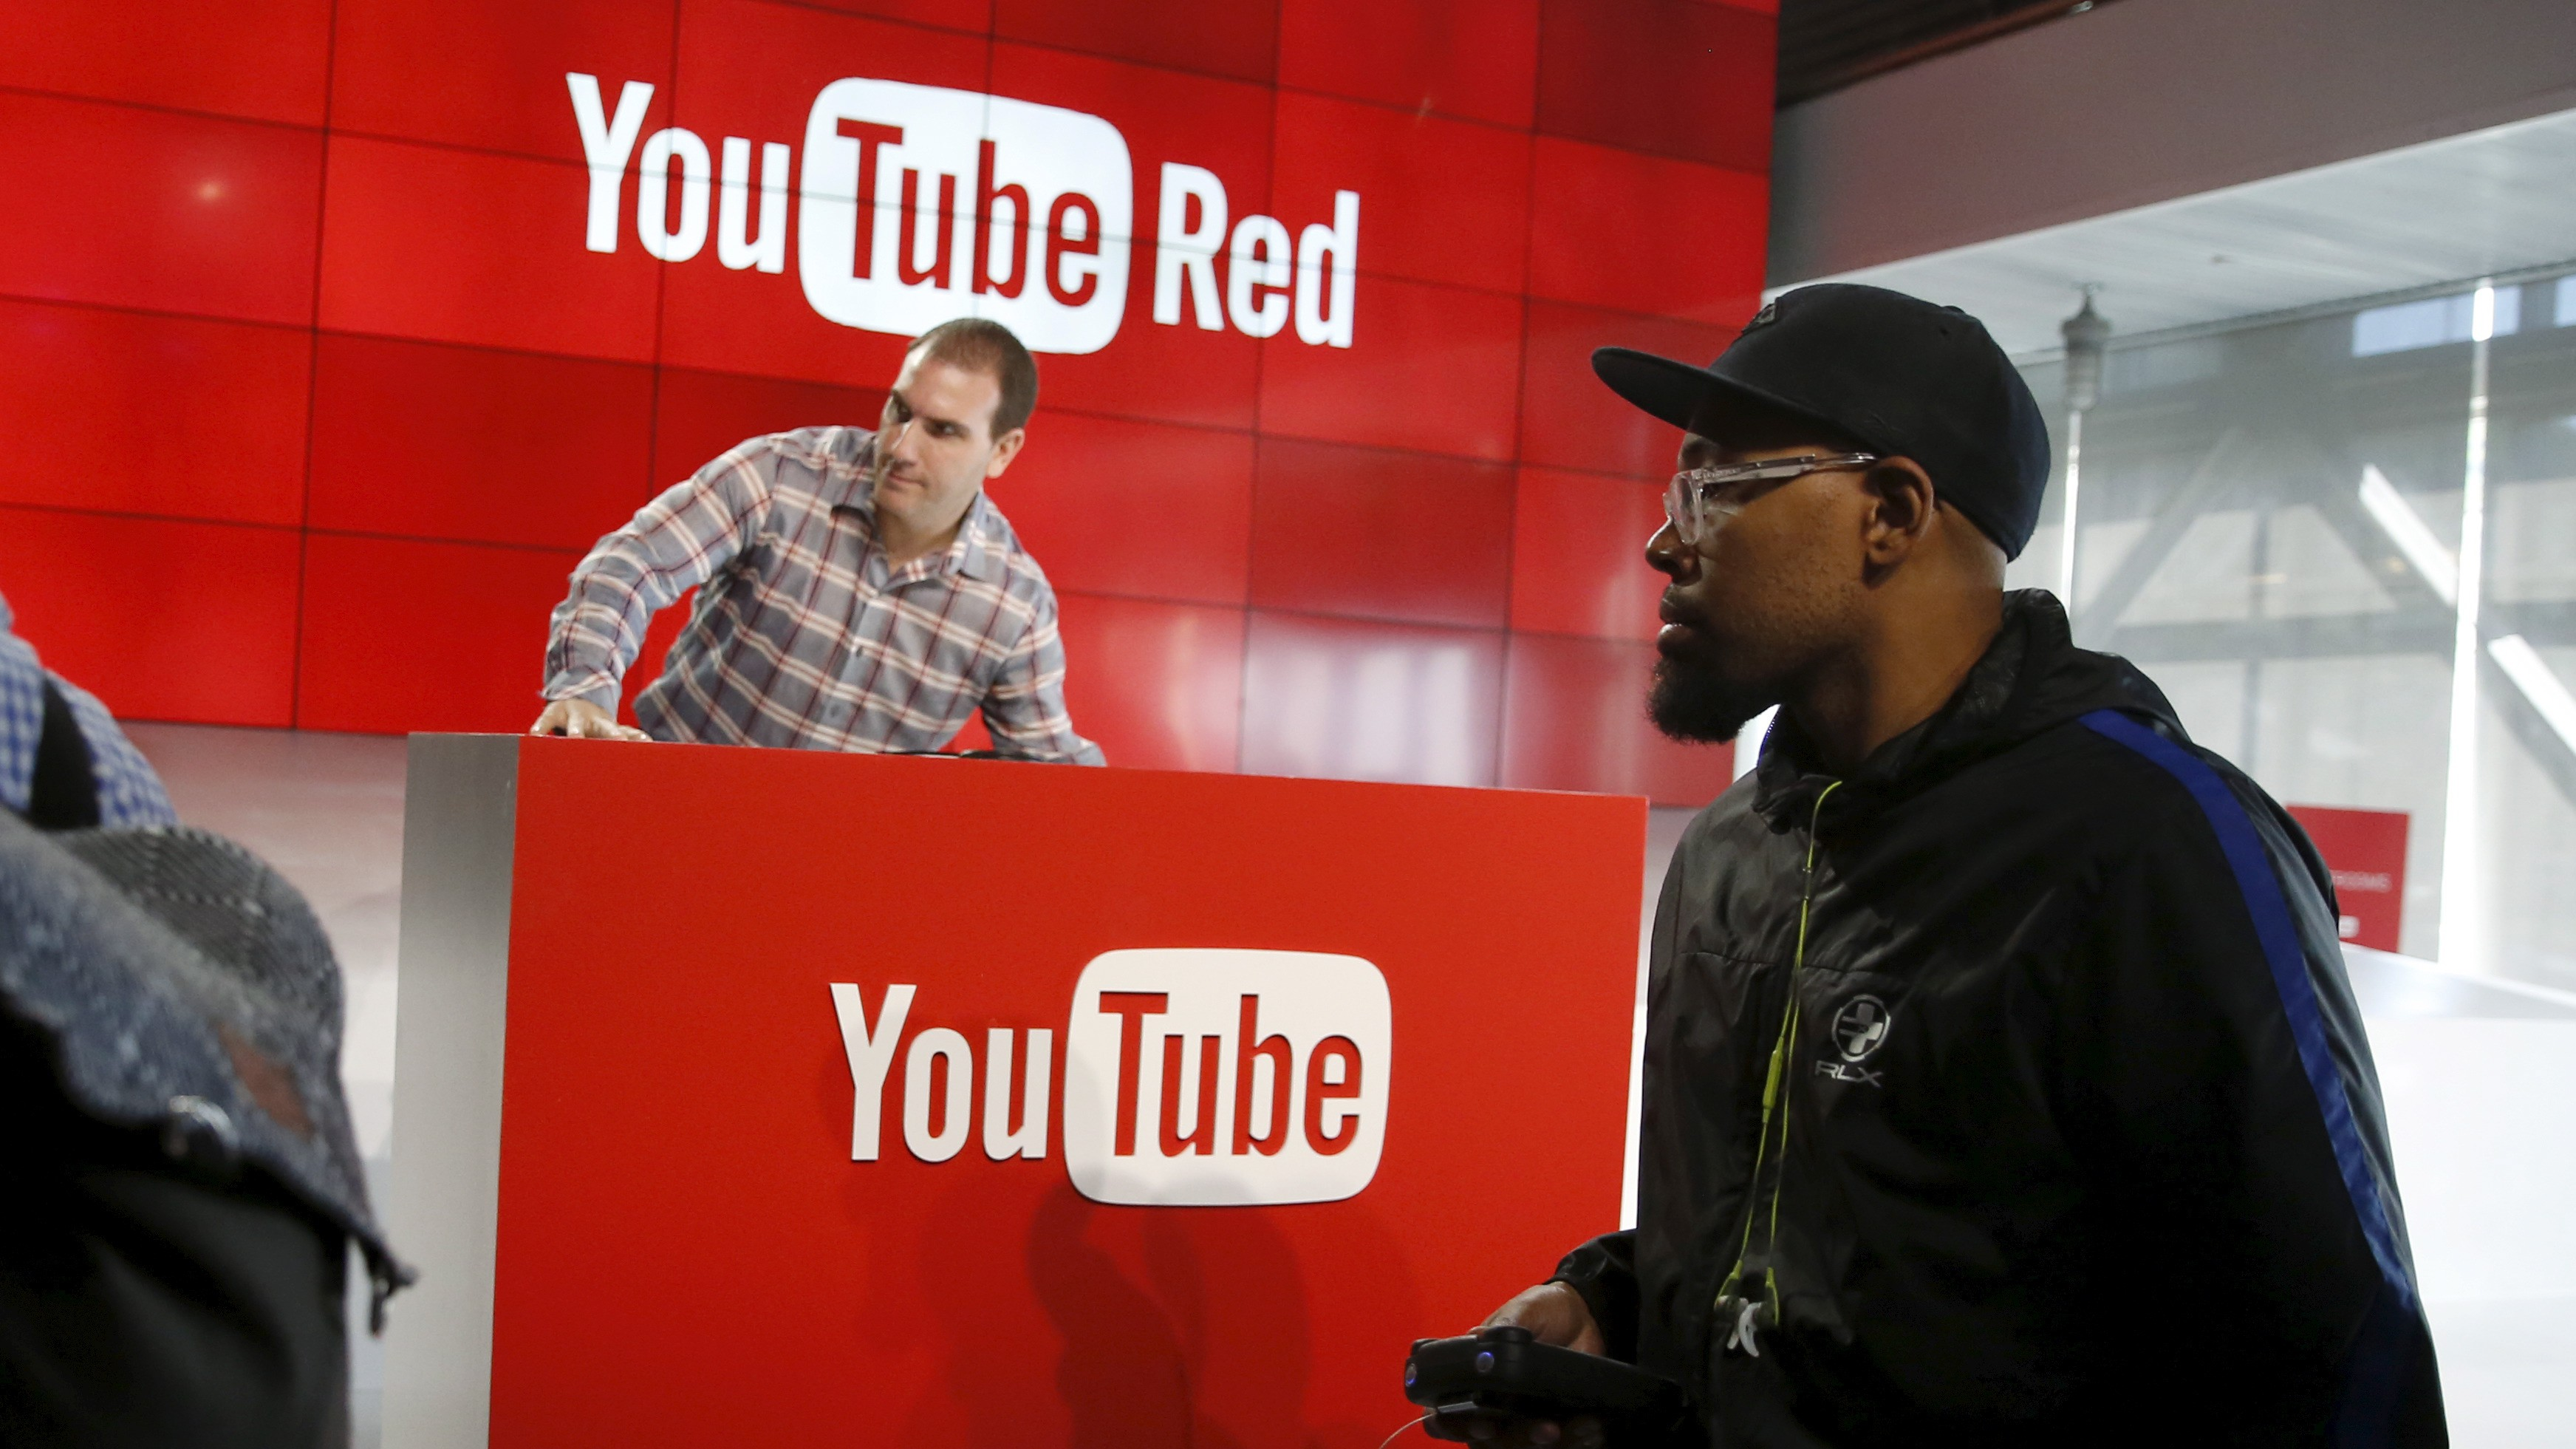 A man with camera walks past a YouTube Red podium